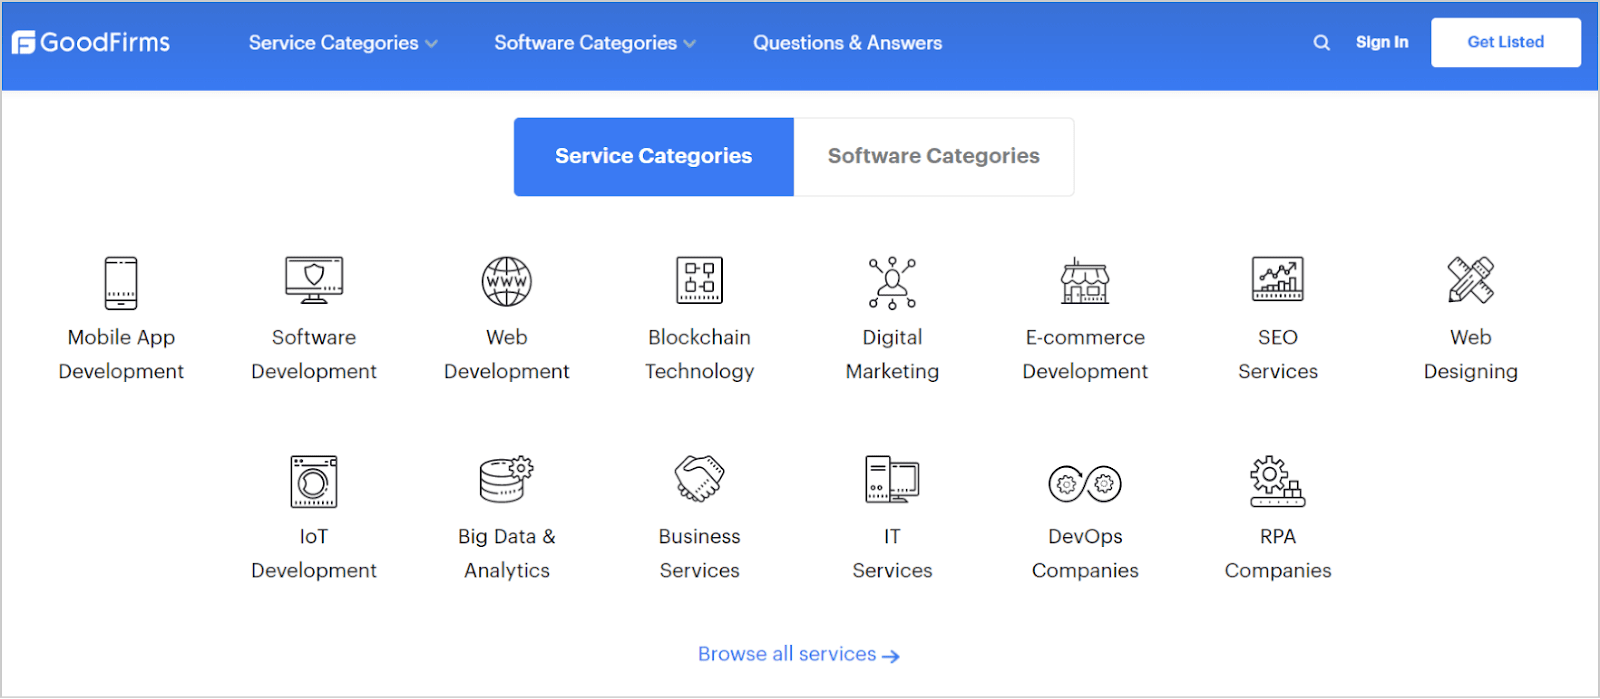 GoodFirms: Service categories